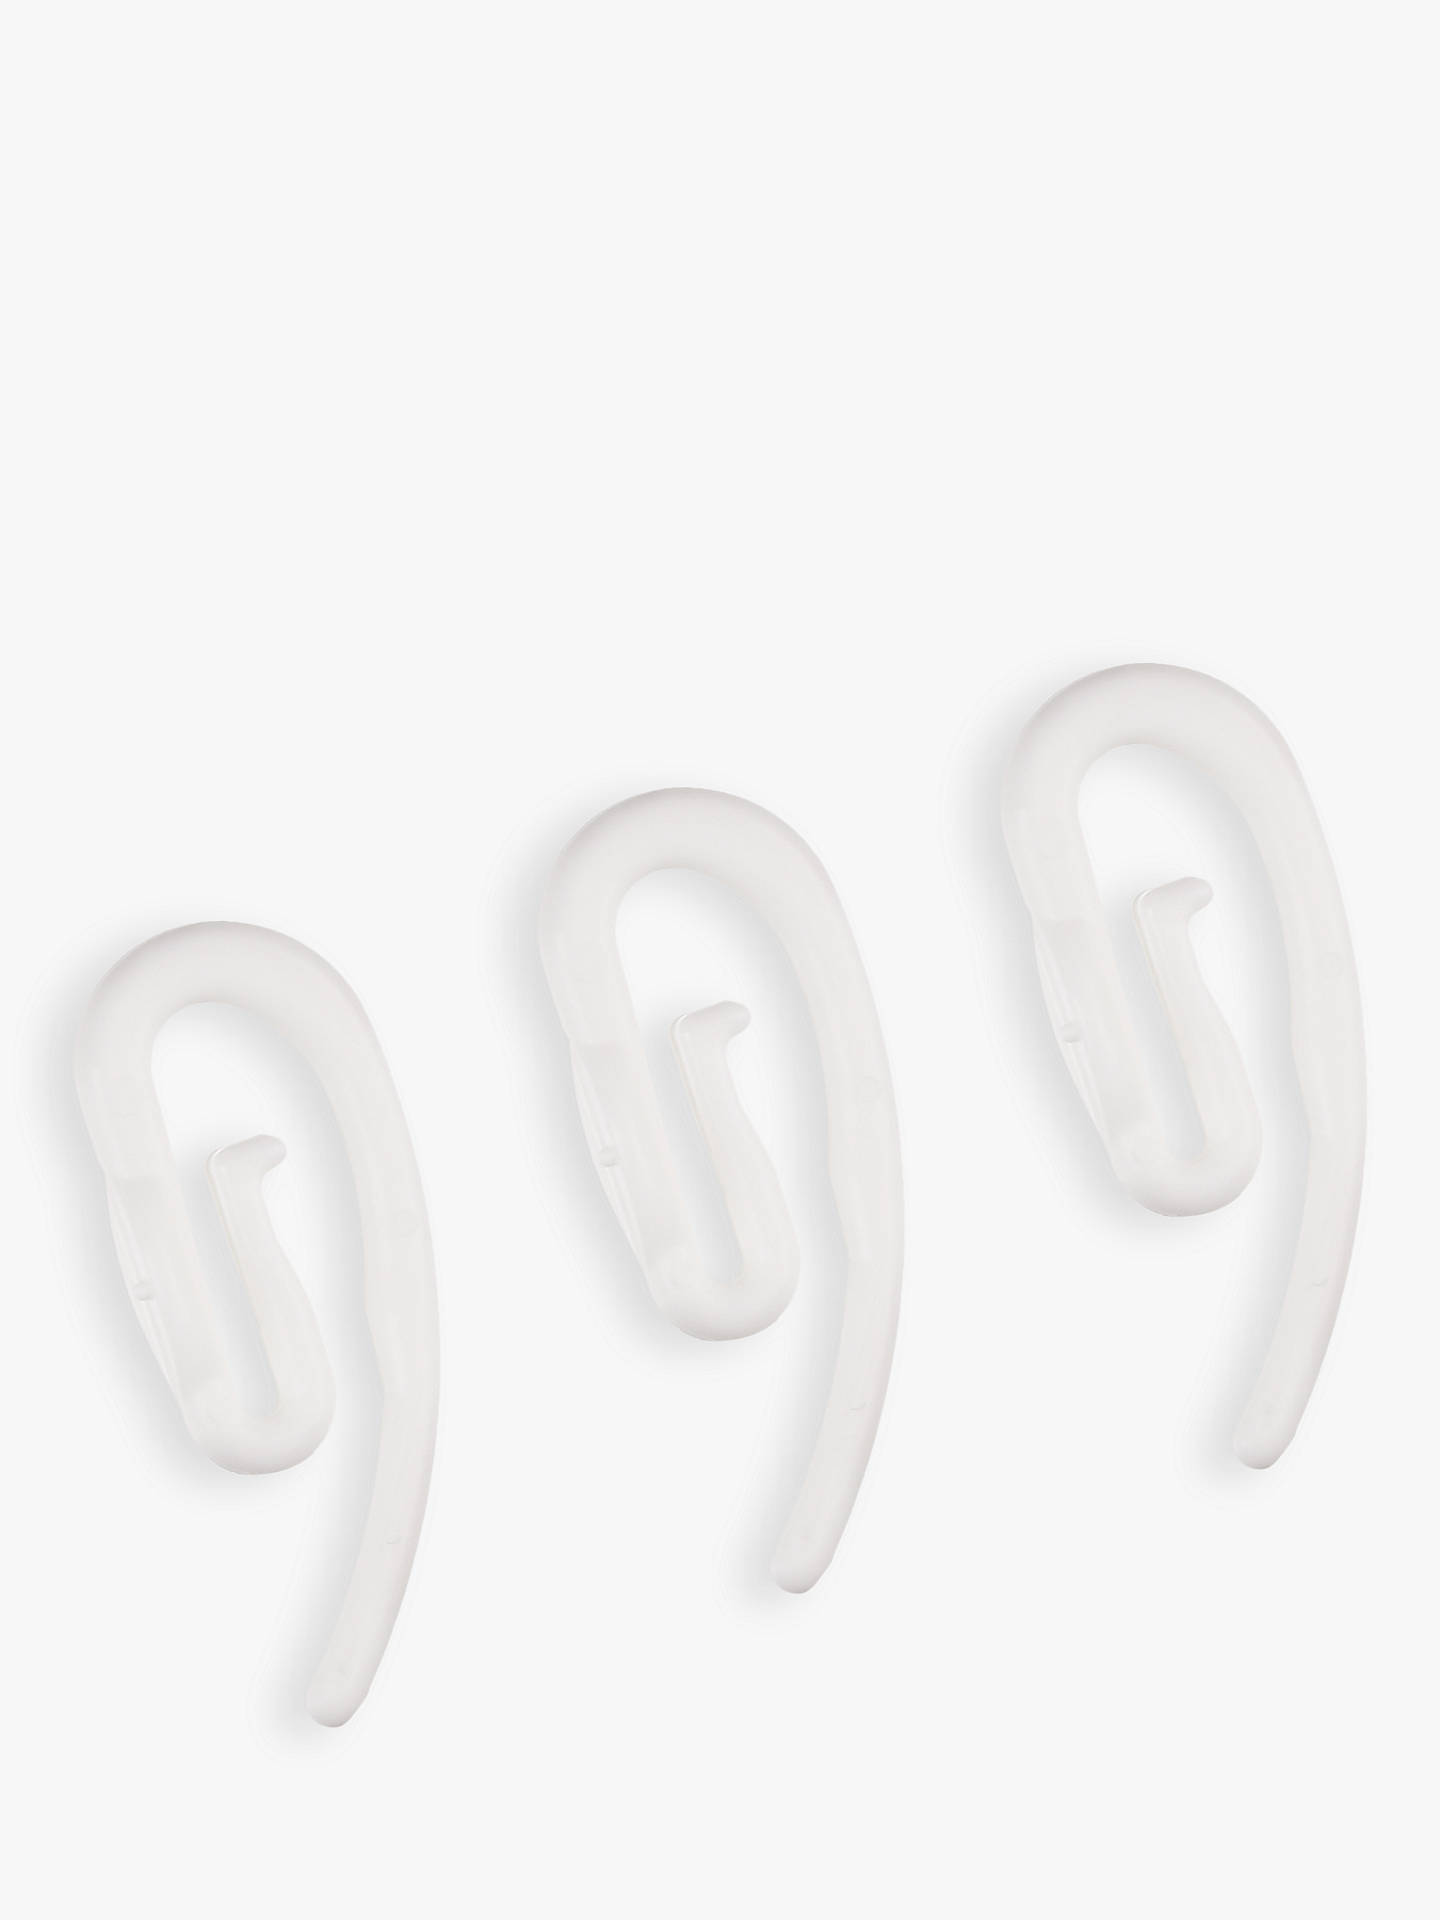 BuyJohn Lewis & Partners Curtain Hooks, Pack of 75 Online at johnlewis.com